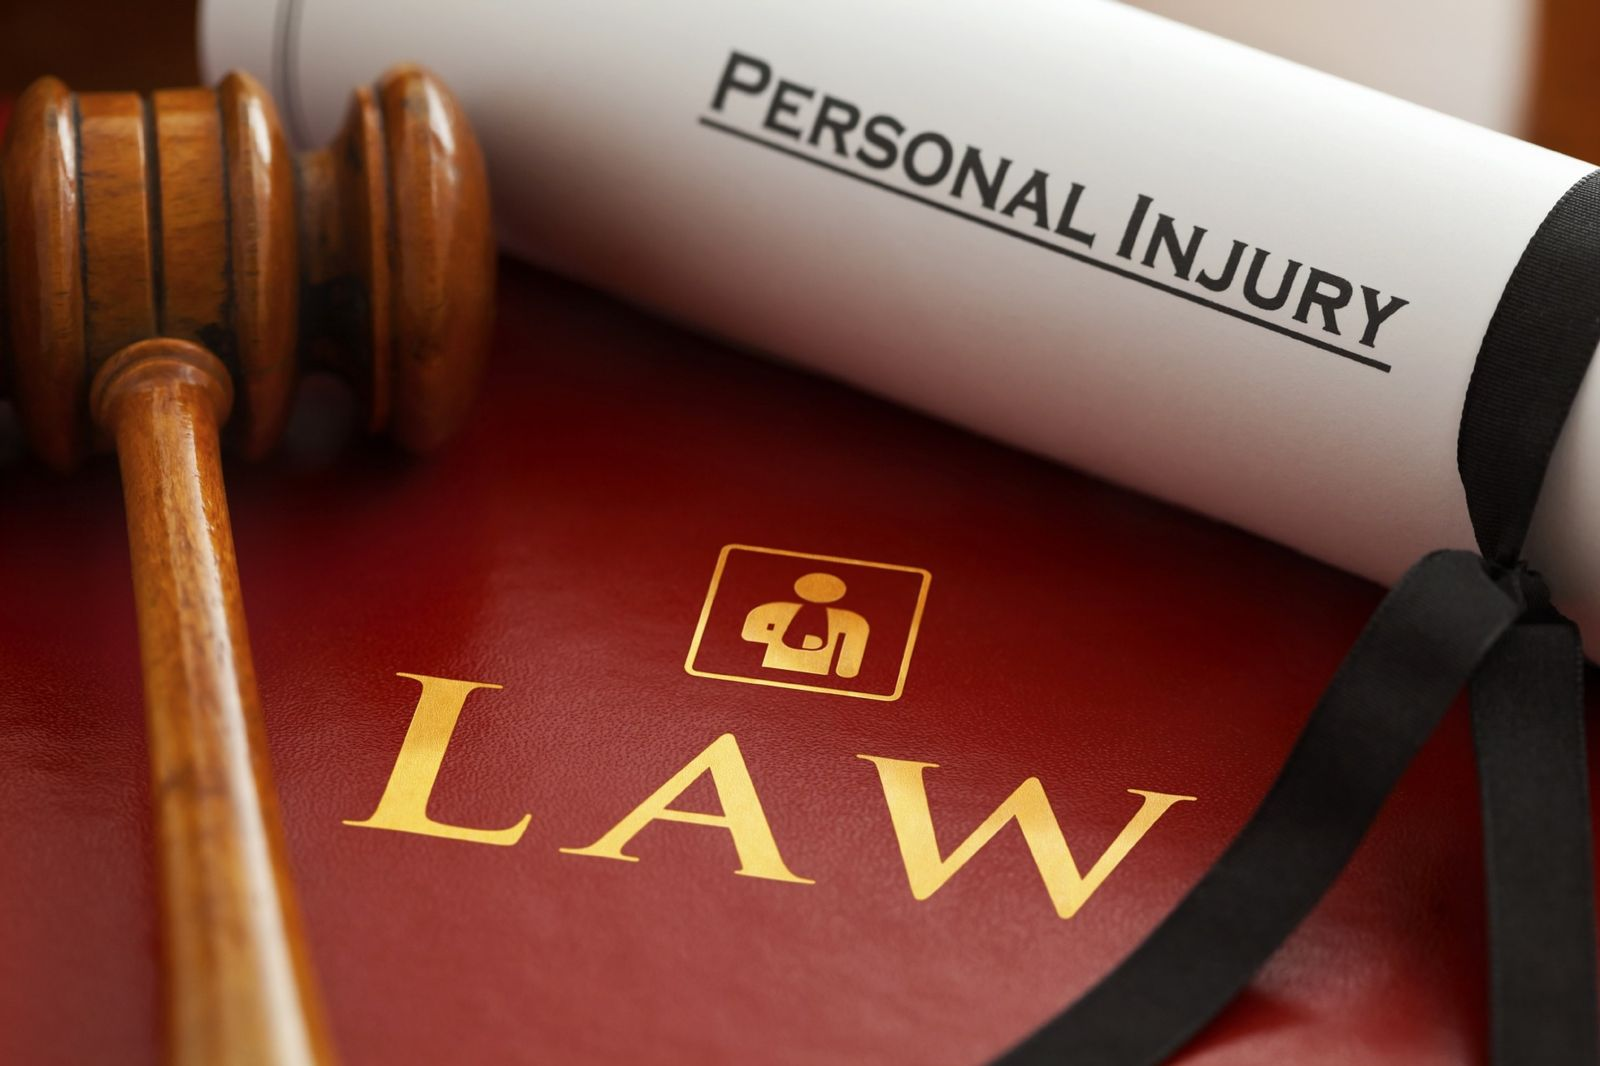 Personal Injury Lawyer Book